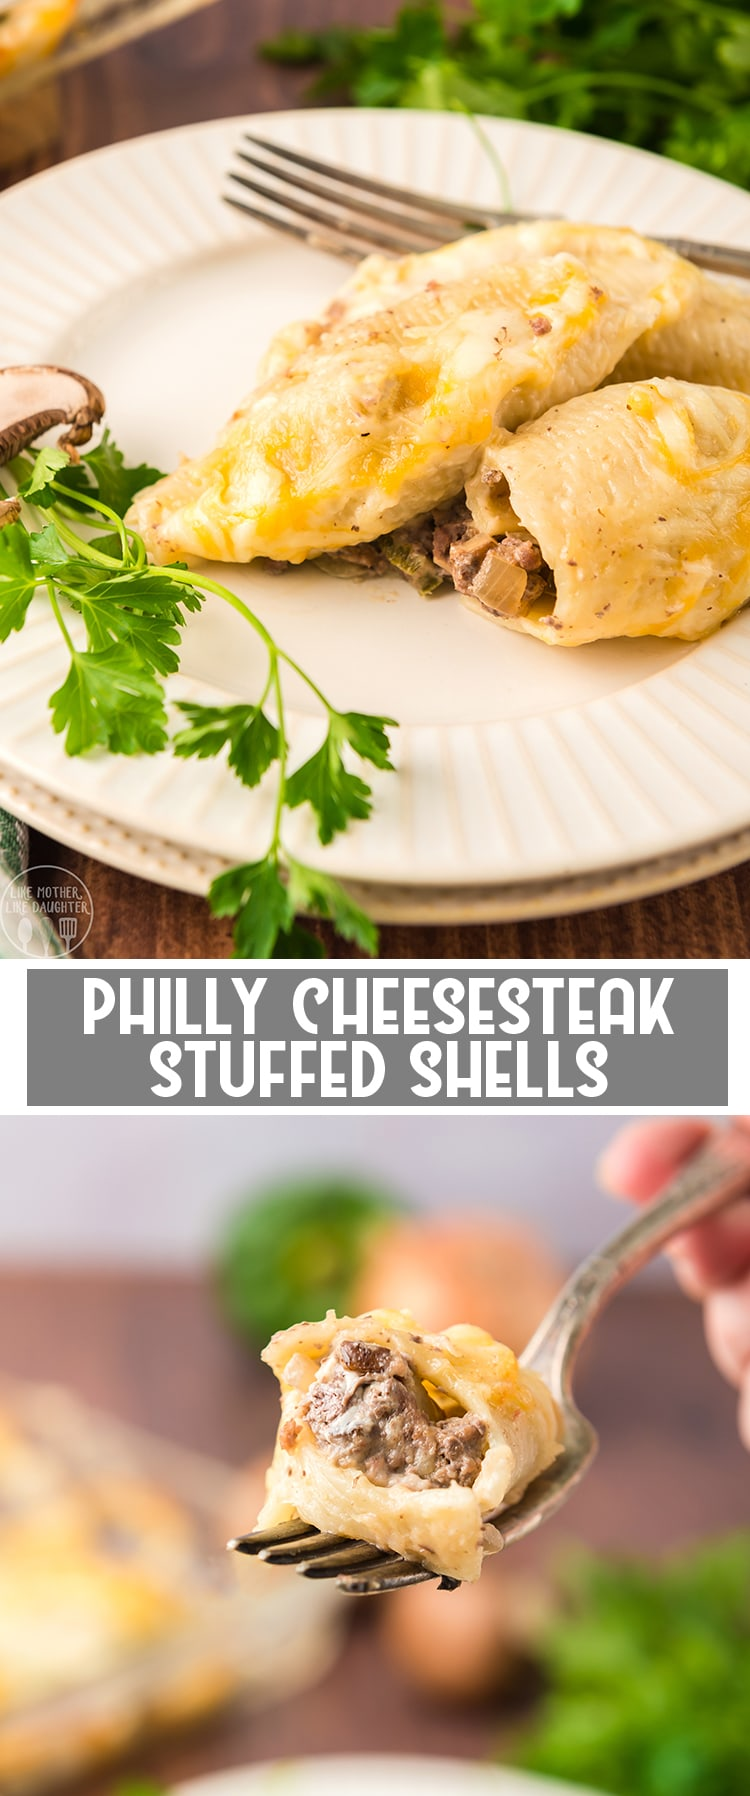 These philly cheese steak stuffed shells have the same great flavors of a philly cheesesteak sandwich, all stuffed in a yummy pasta shell.